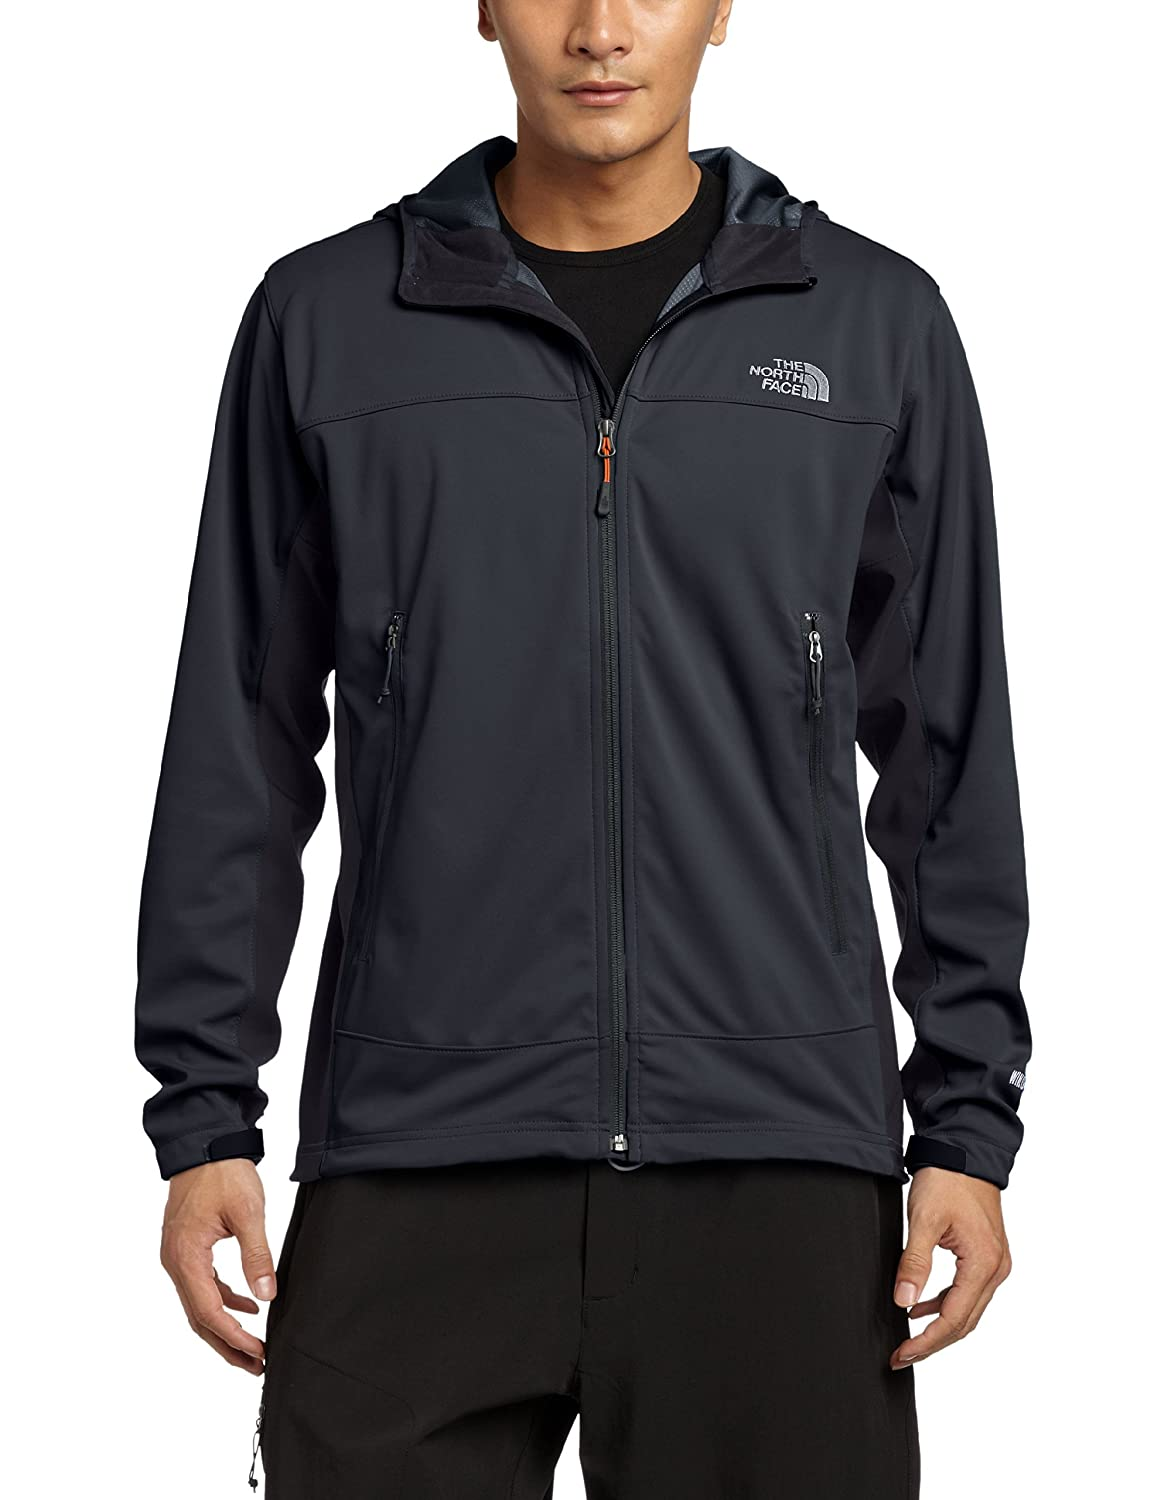 Men'The North Face Damen Jacke Cipher Hybrid Hoodie